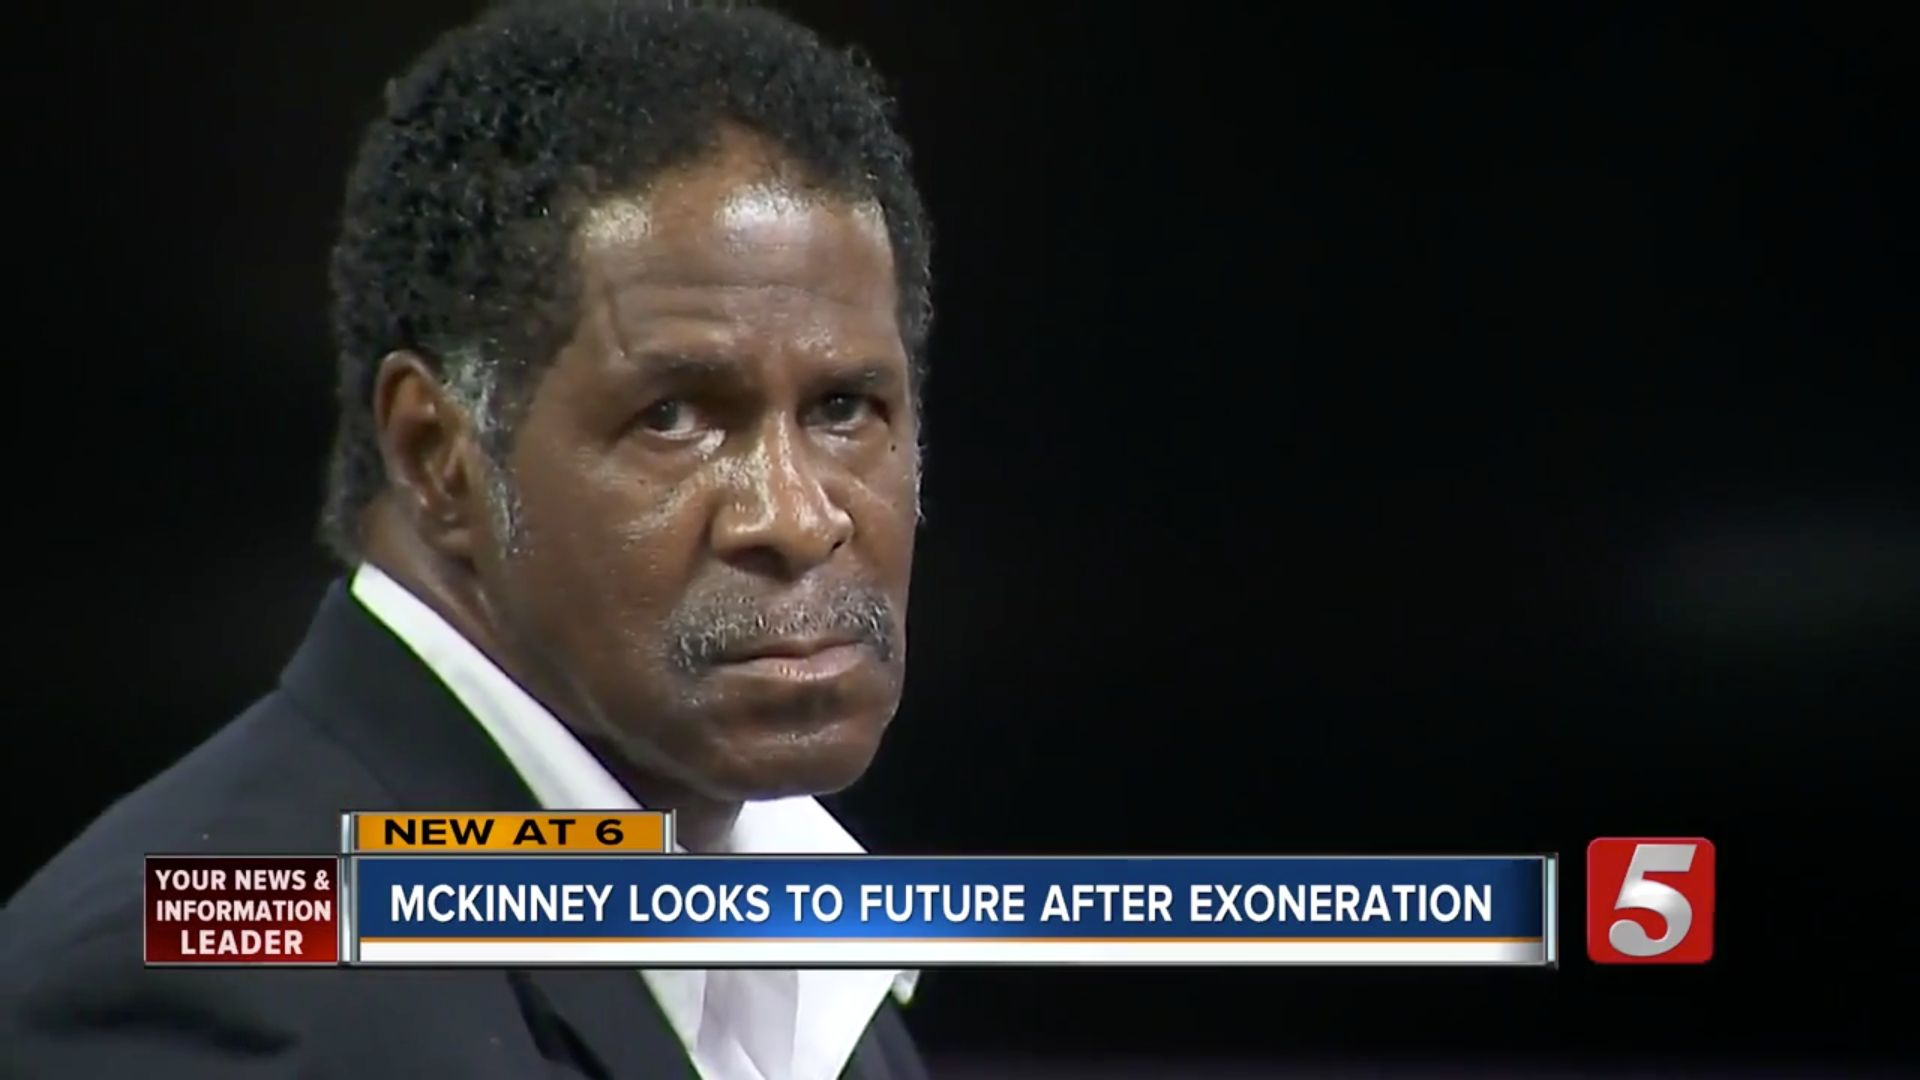 Lawrence McKinney, 61, was awarded $1 million on Wednesday for a 1978 conviction that was overturned in 2009.